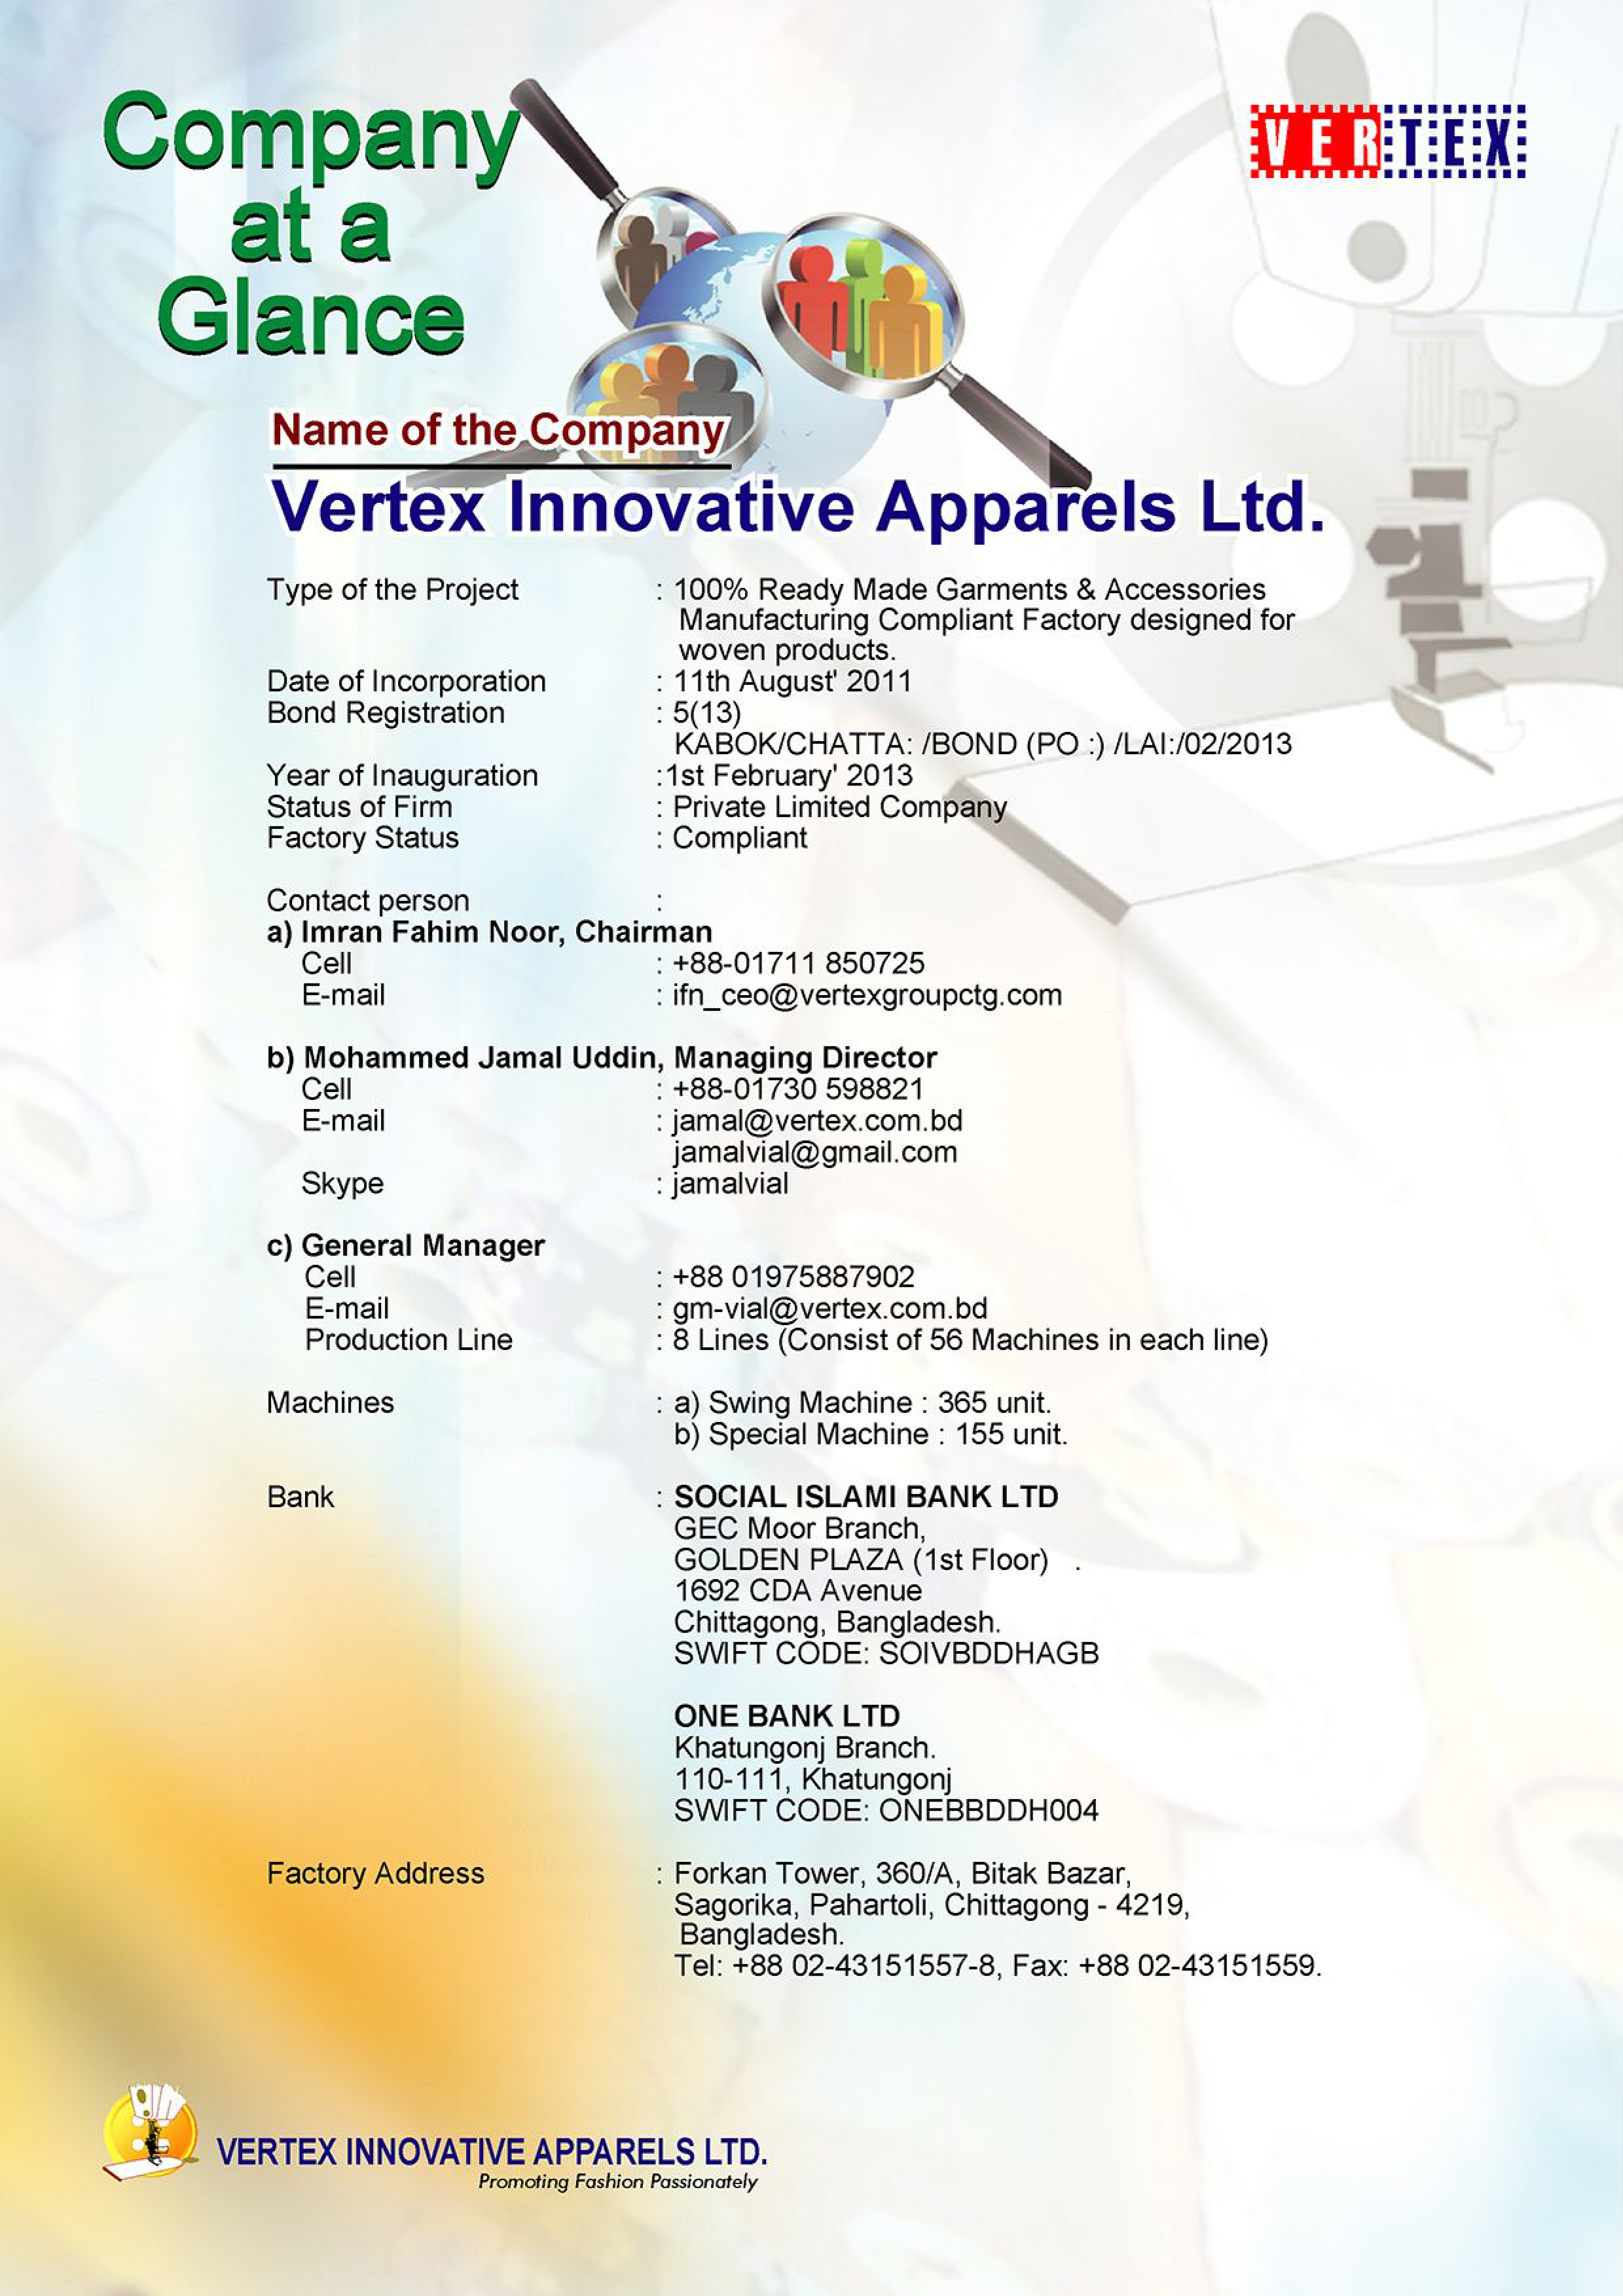 vertex innoavative apparels limited